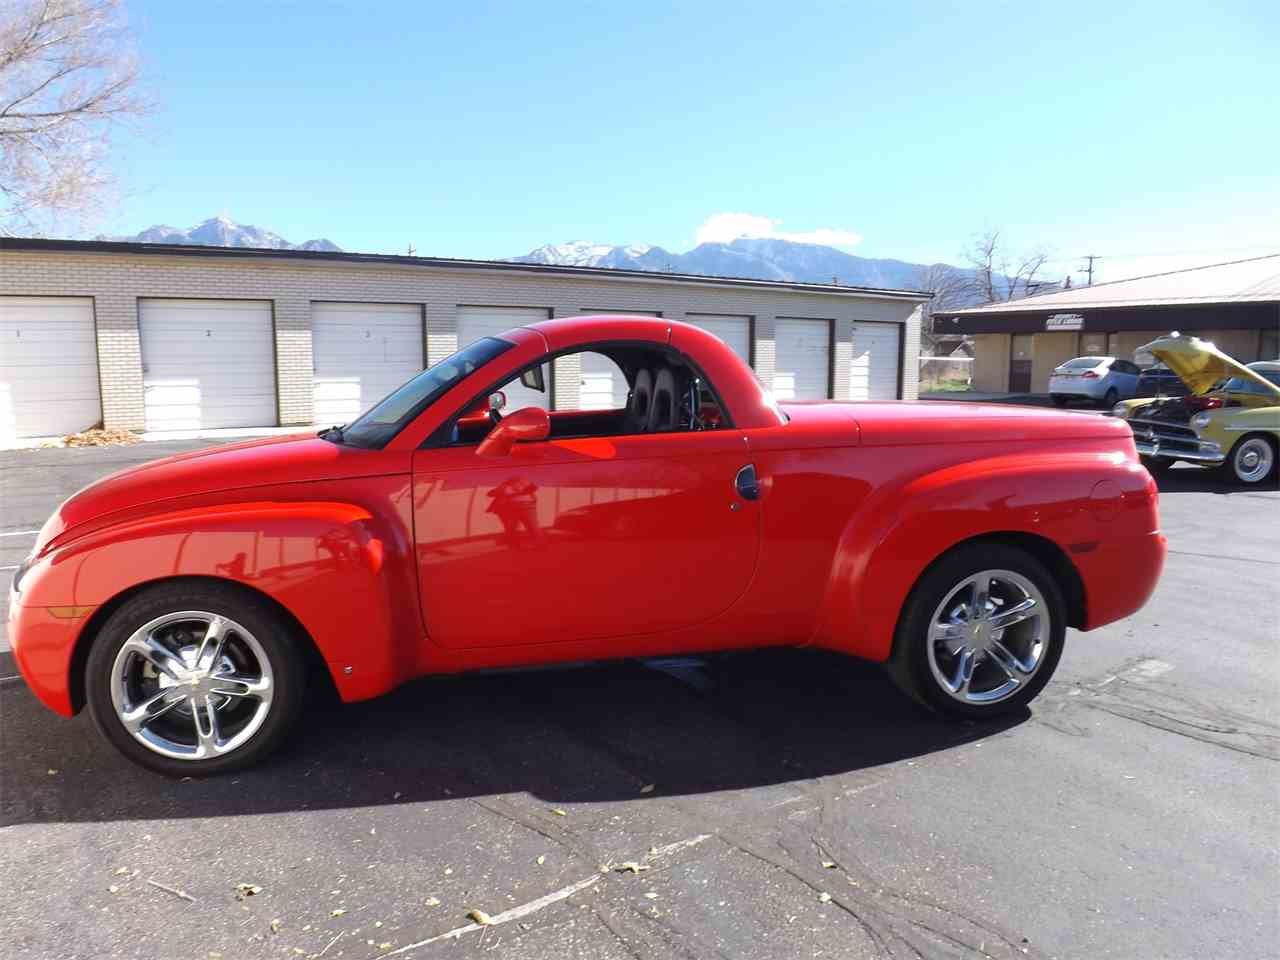 All Chevy 2006 chevrolet ssr for sale : 2006 Chevrolet SSR for Sale | ClassicCars.com | CC-1041093